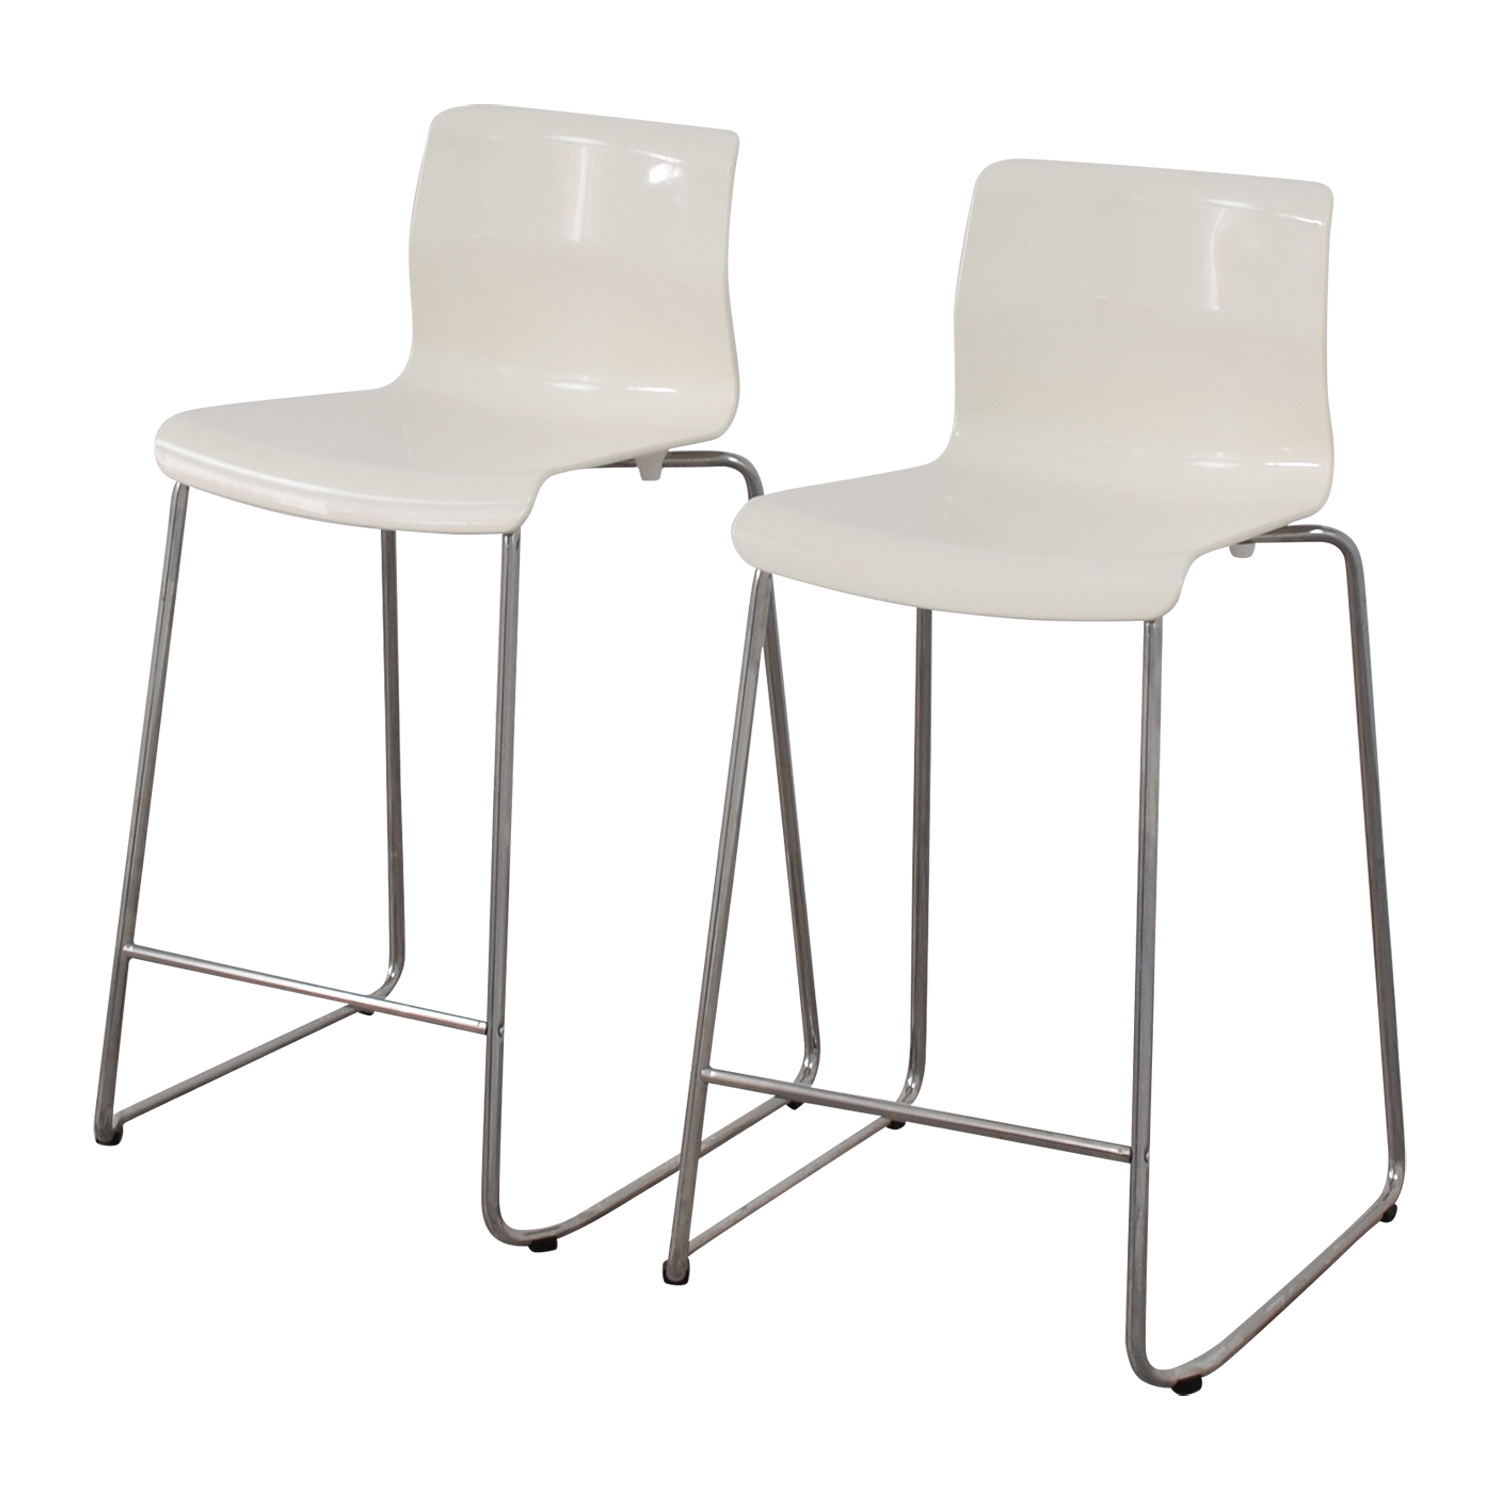 85 Off Ikea Ikea White Glen Bar Stools Chairs